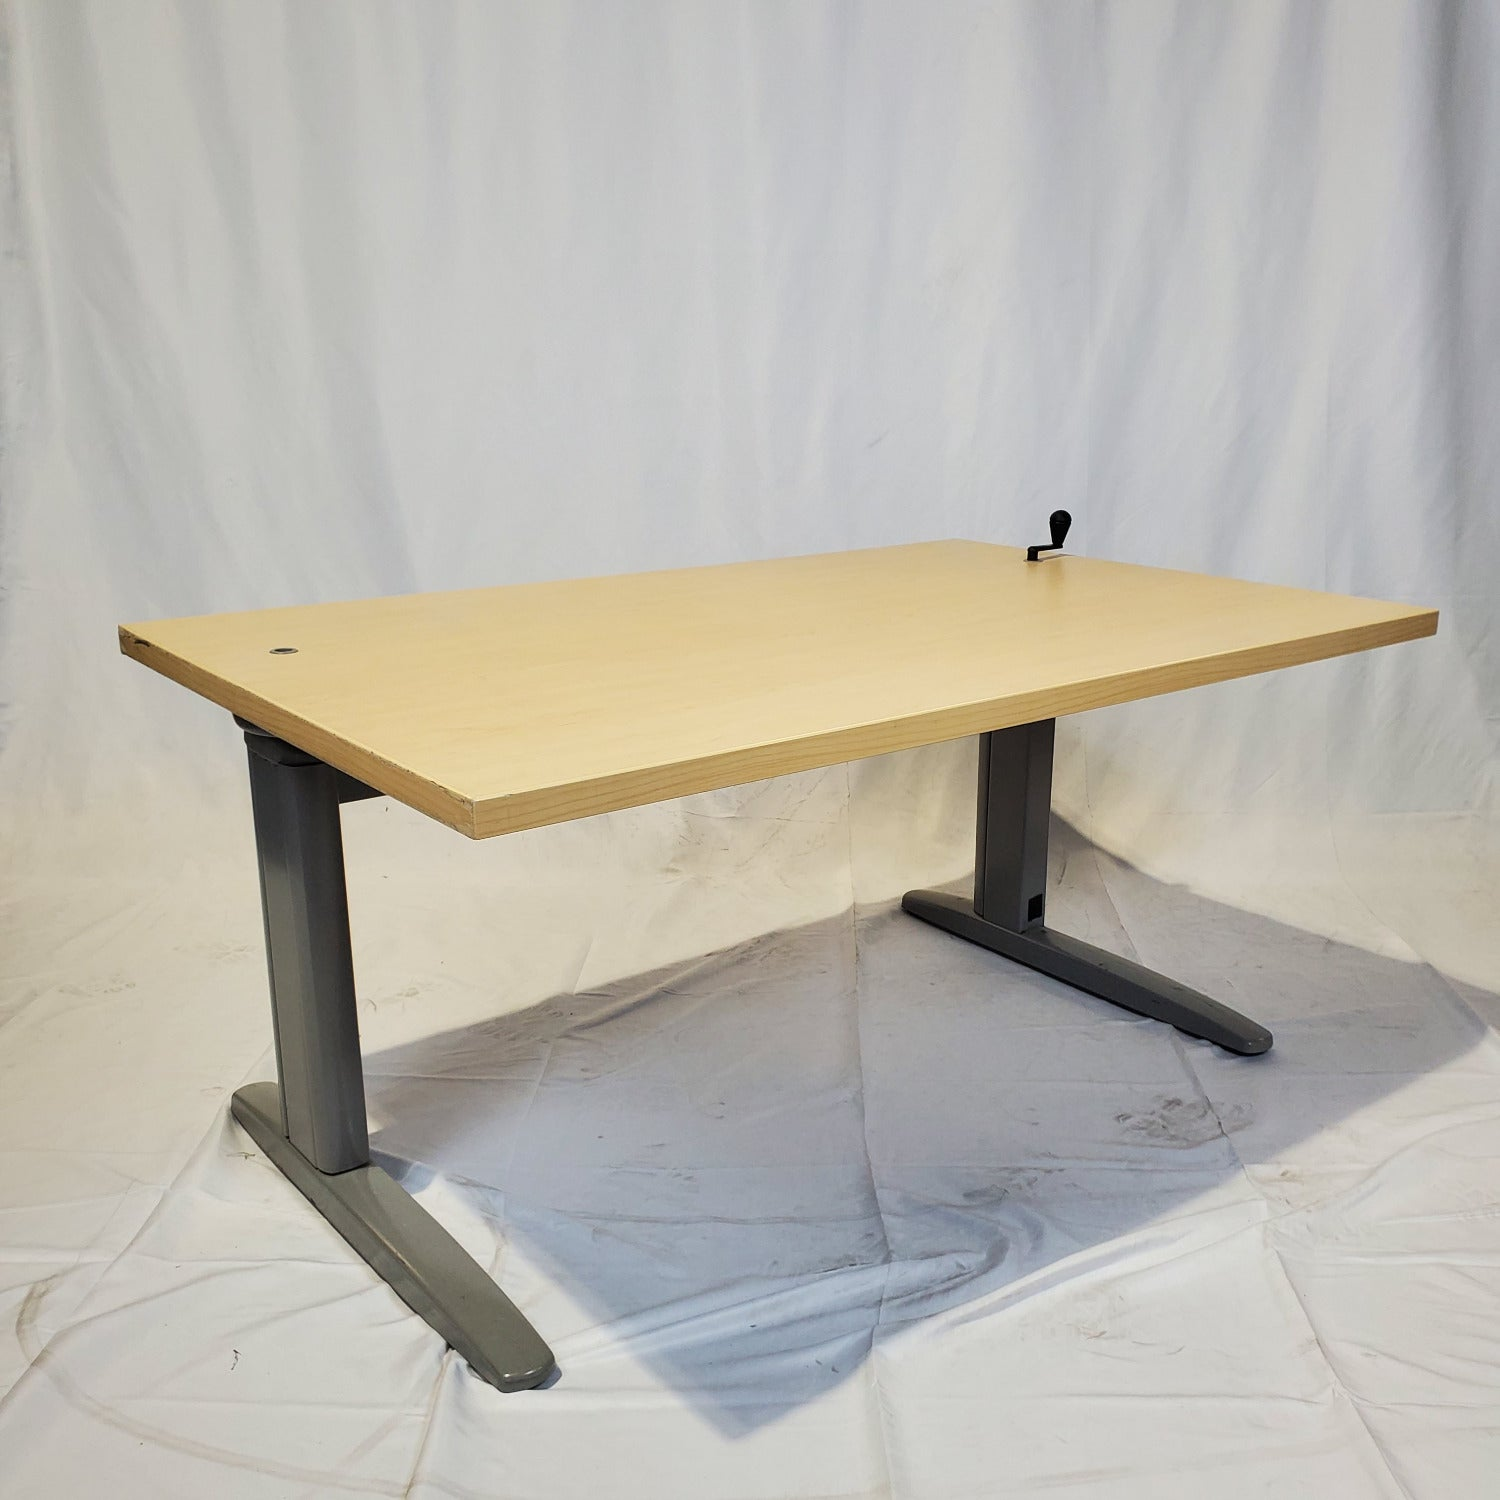 "Pre-Owned - Used Manual Height Adjustable Desk 30X47"" - Duckys Office Furniture"